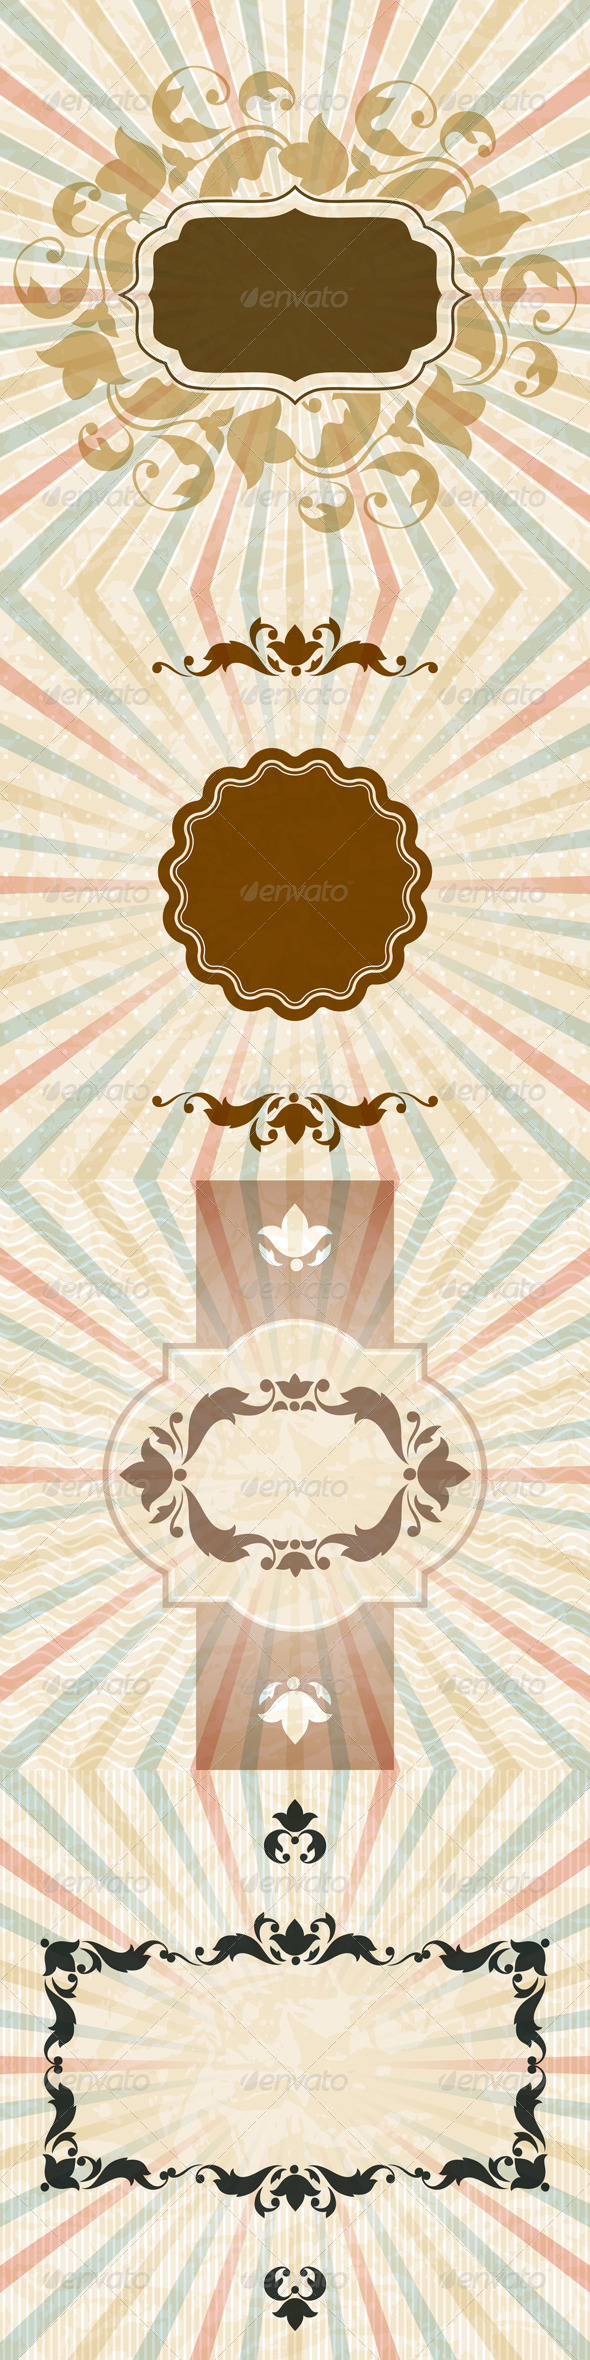 Retro Backgrounds with Vintage Floral Frame. - Retro Technology